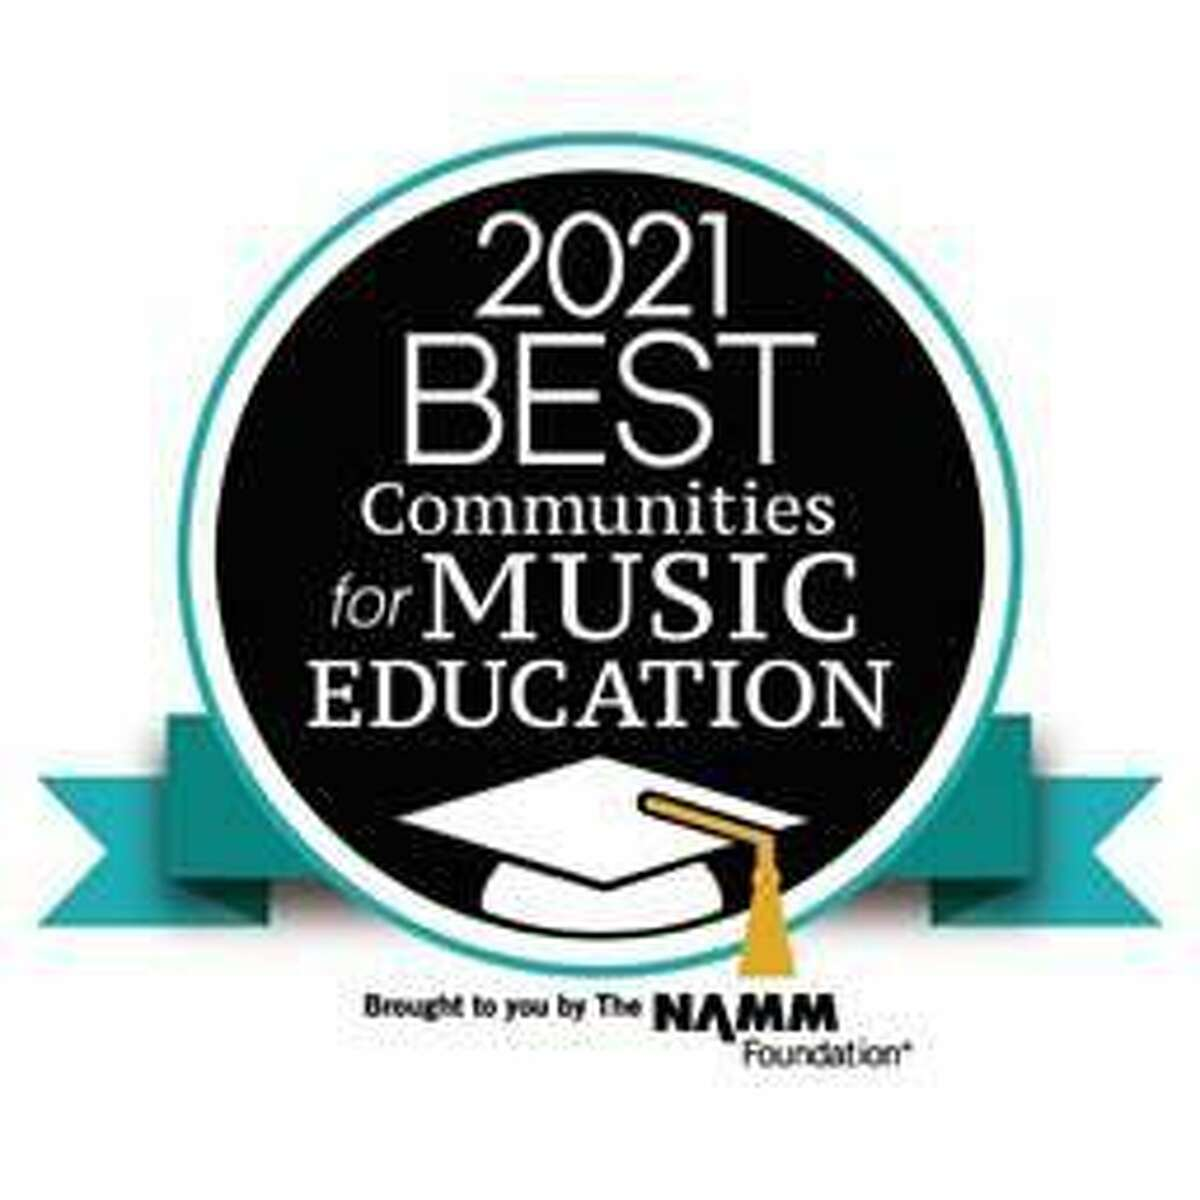 """For the 17th consecutive year, Katy Independent School District has been recognized as one of the nation's """"Best Communities for Music Education."""""""